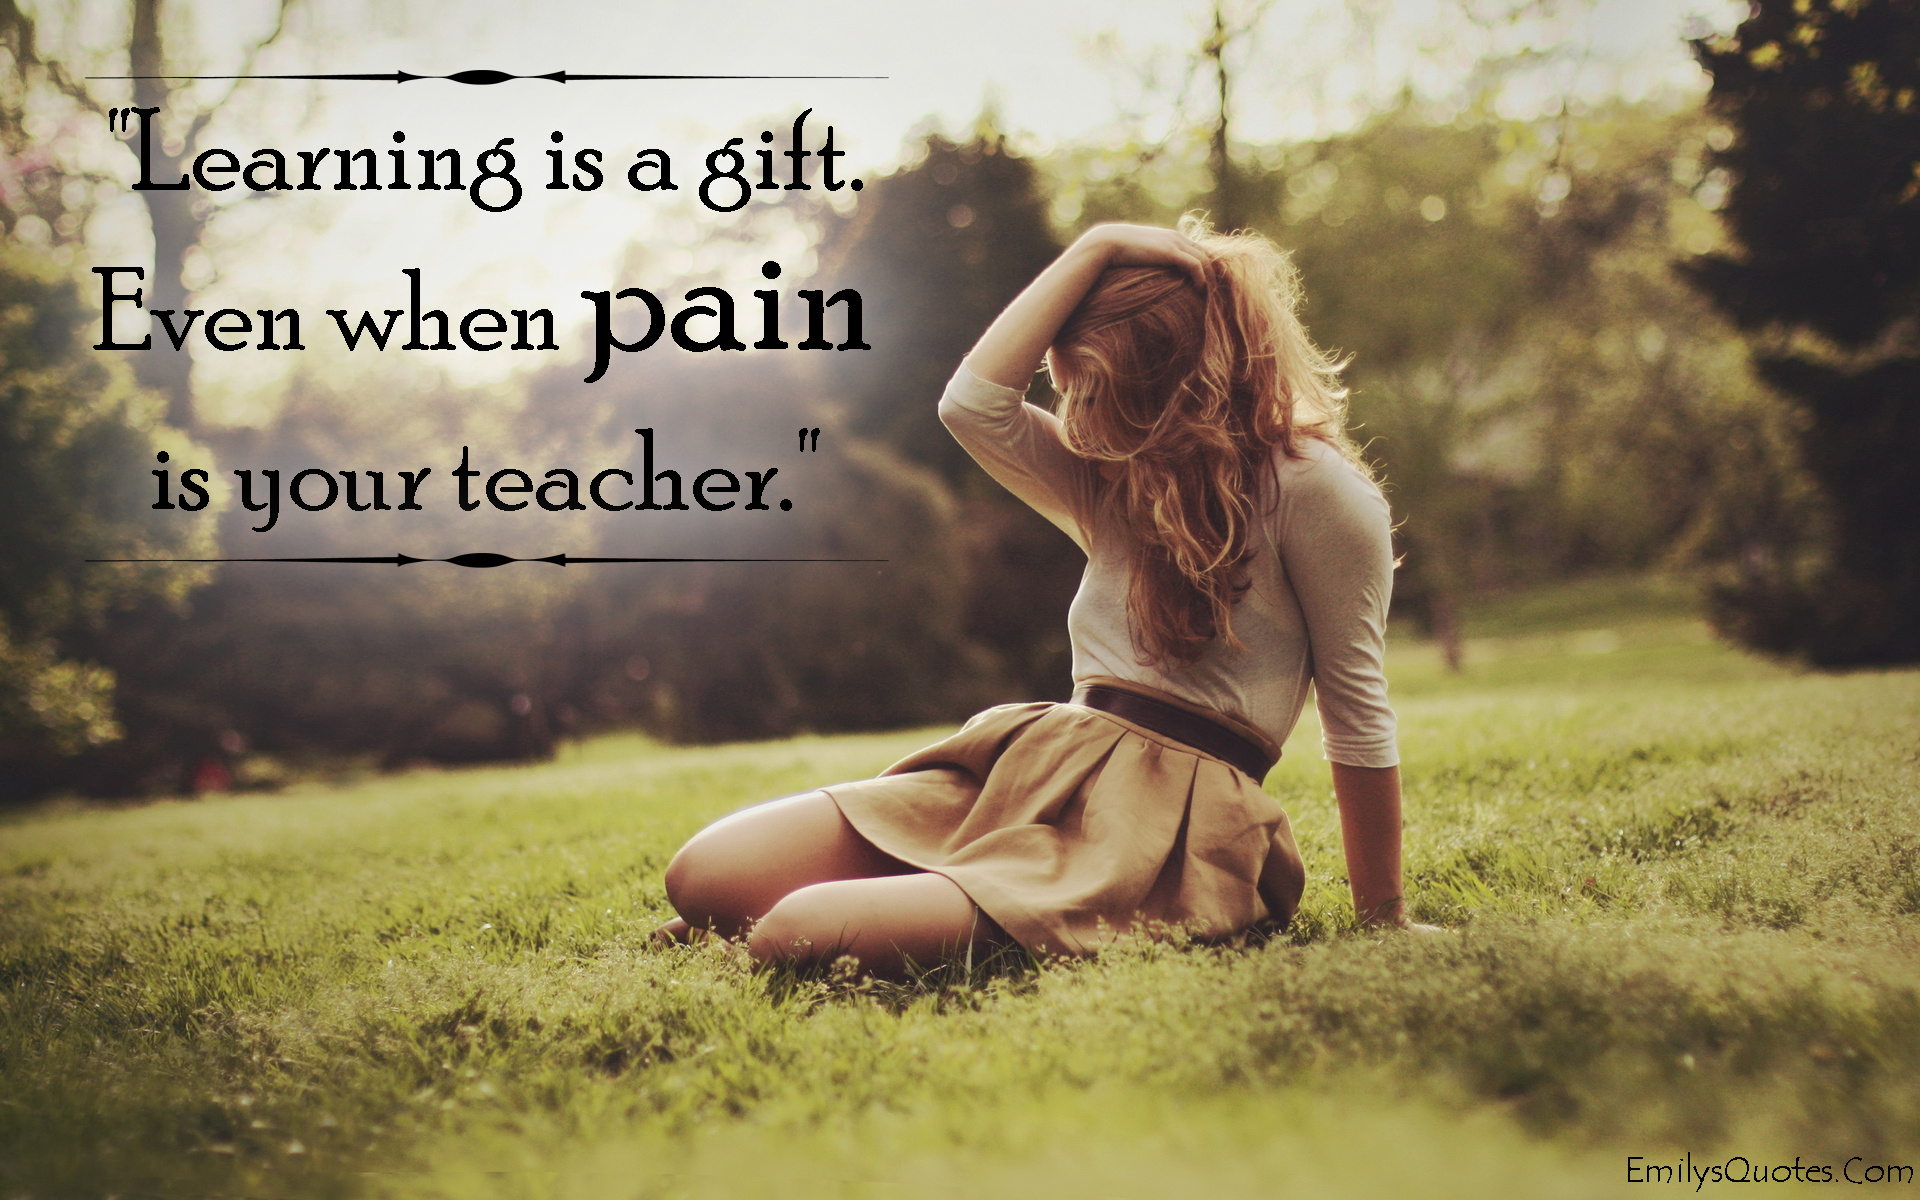 EmilysQuotes.Com - learning, gift, pain, teacher, unknown